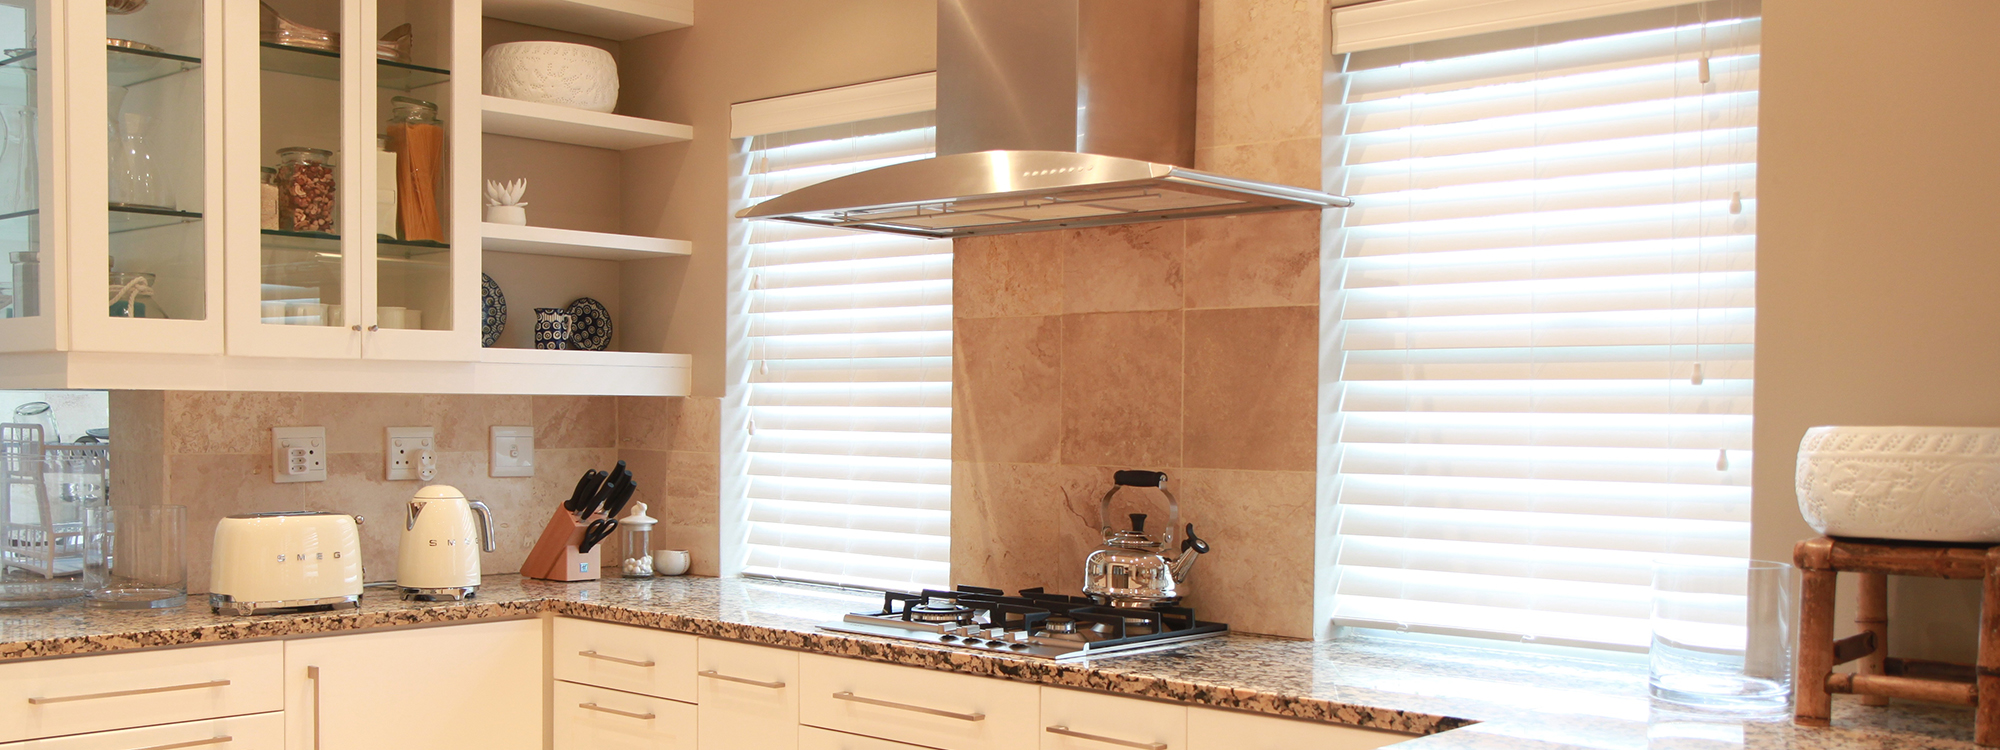 Decowood-shutters-kitchen-front-view (1)